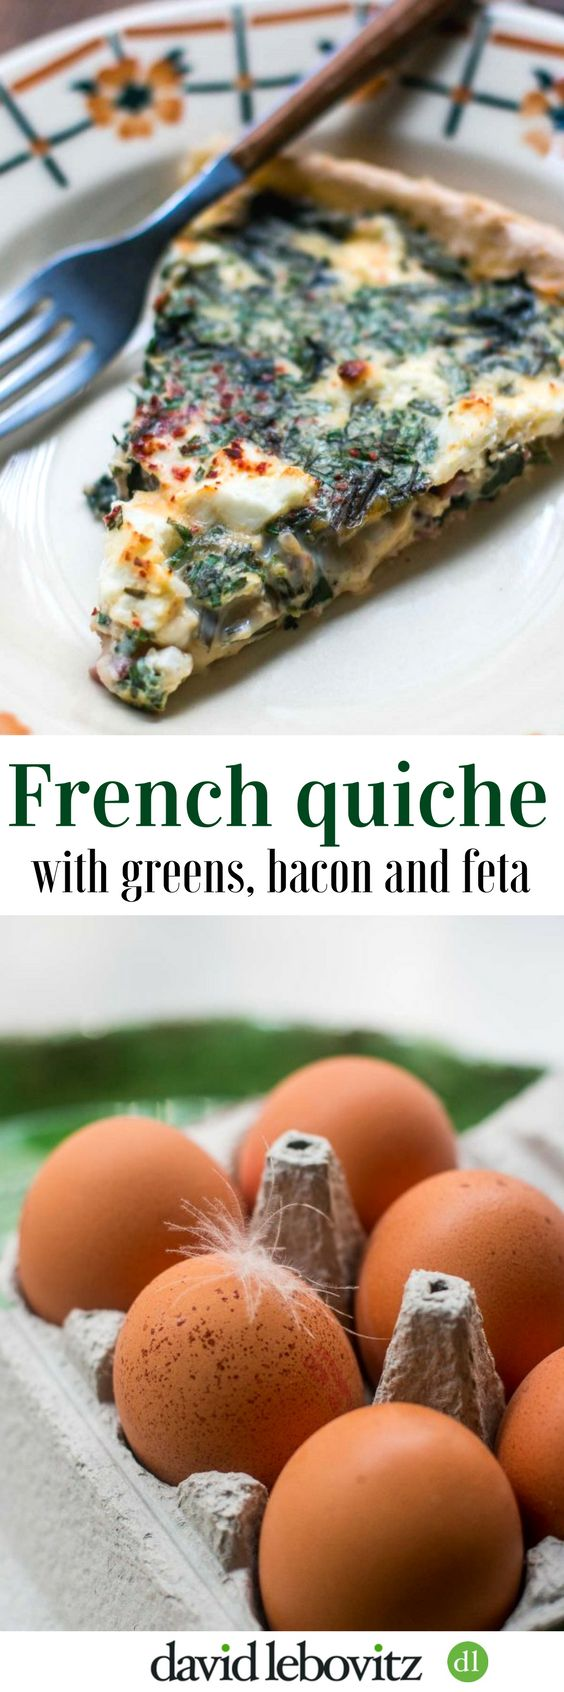 A French quiche recipe with greens, bacon and feta. The perfect lunch!